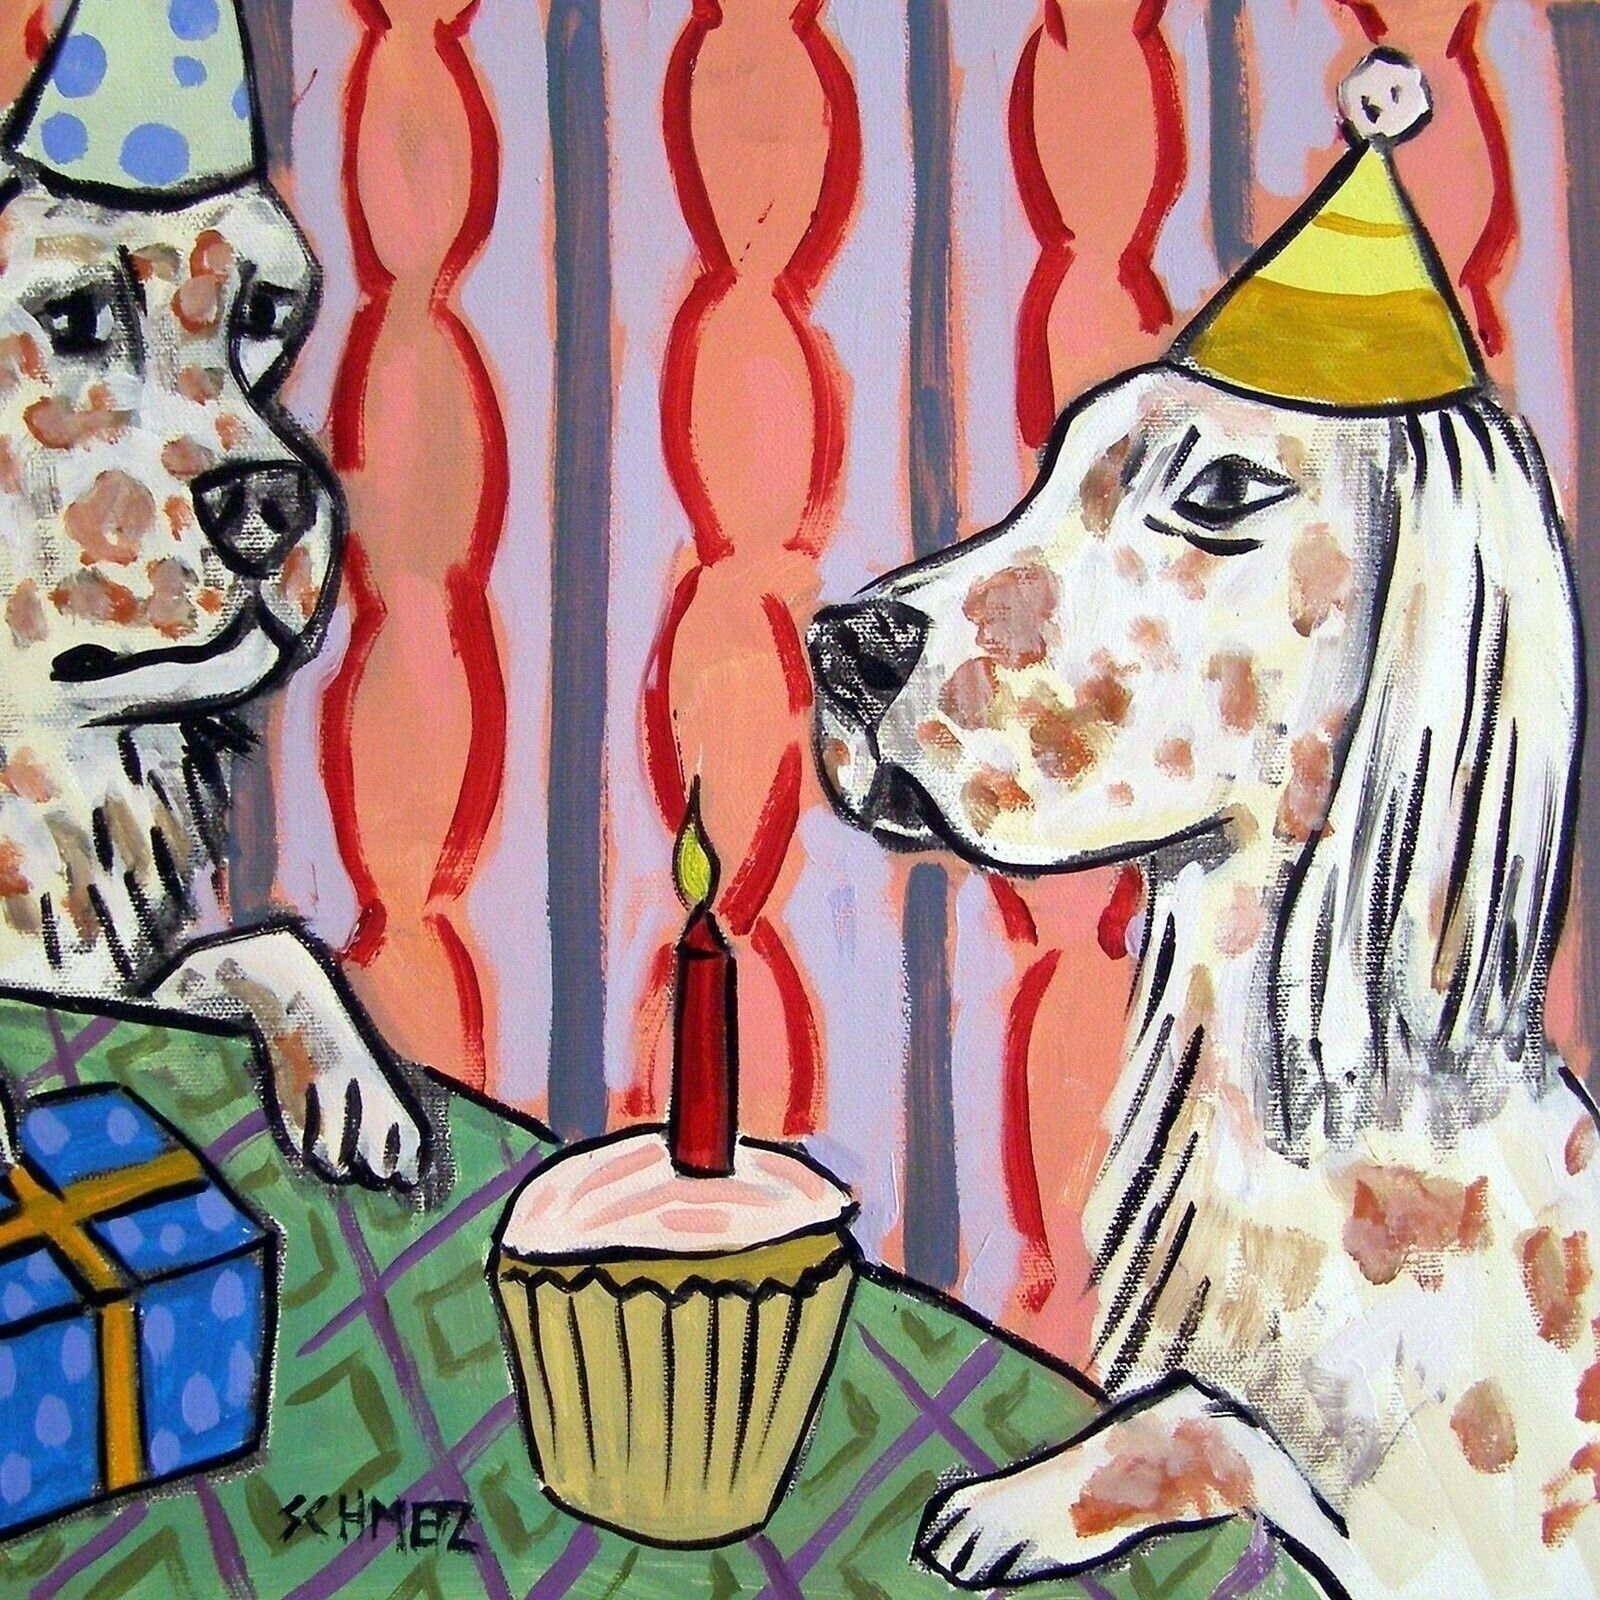 Details About English Setter Birthday Party Animal Gift Dog Art Tile Coasters Gifts Tiles